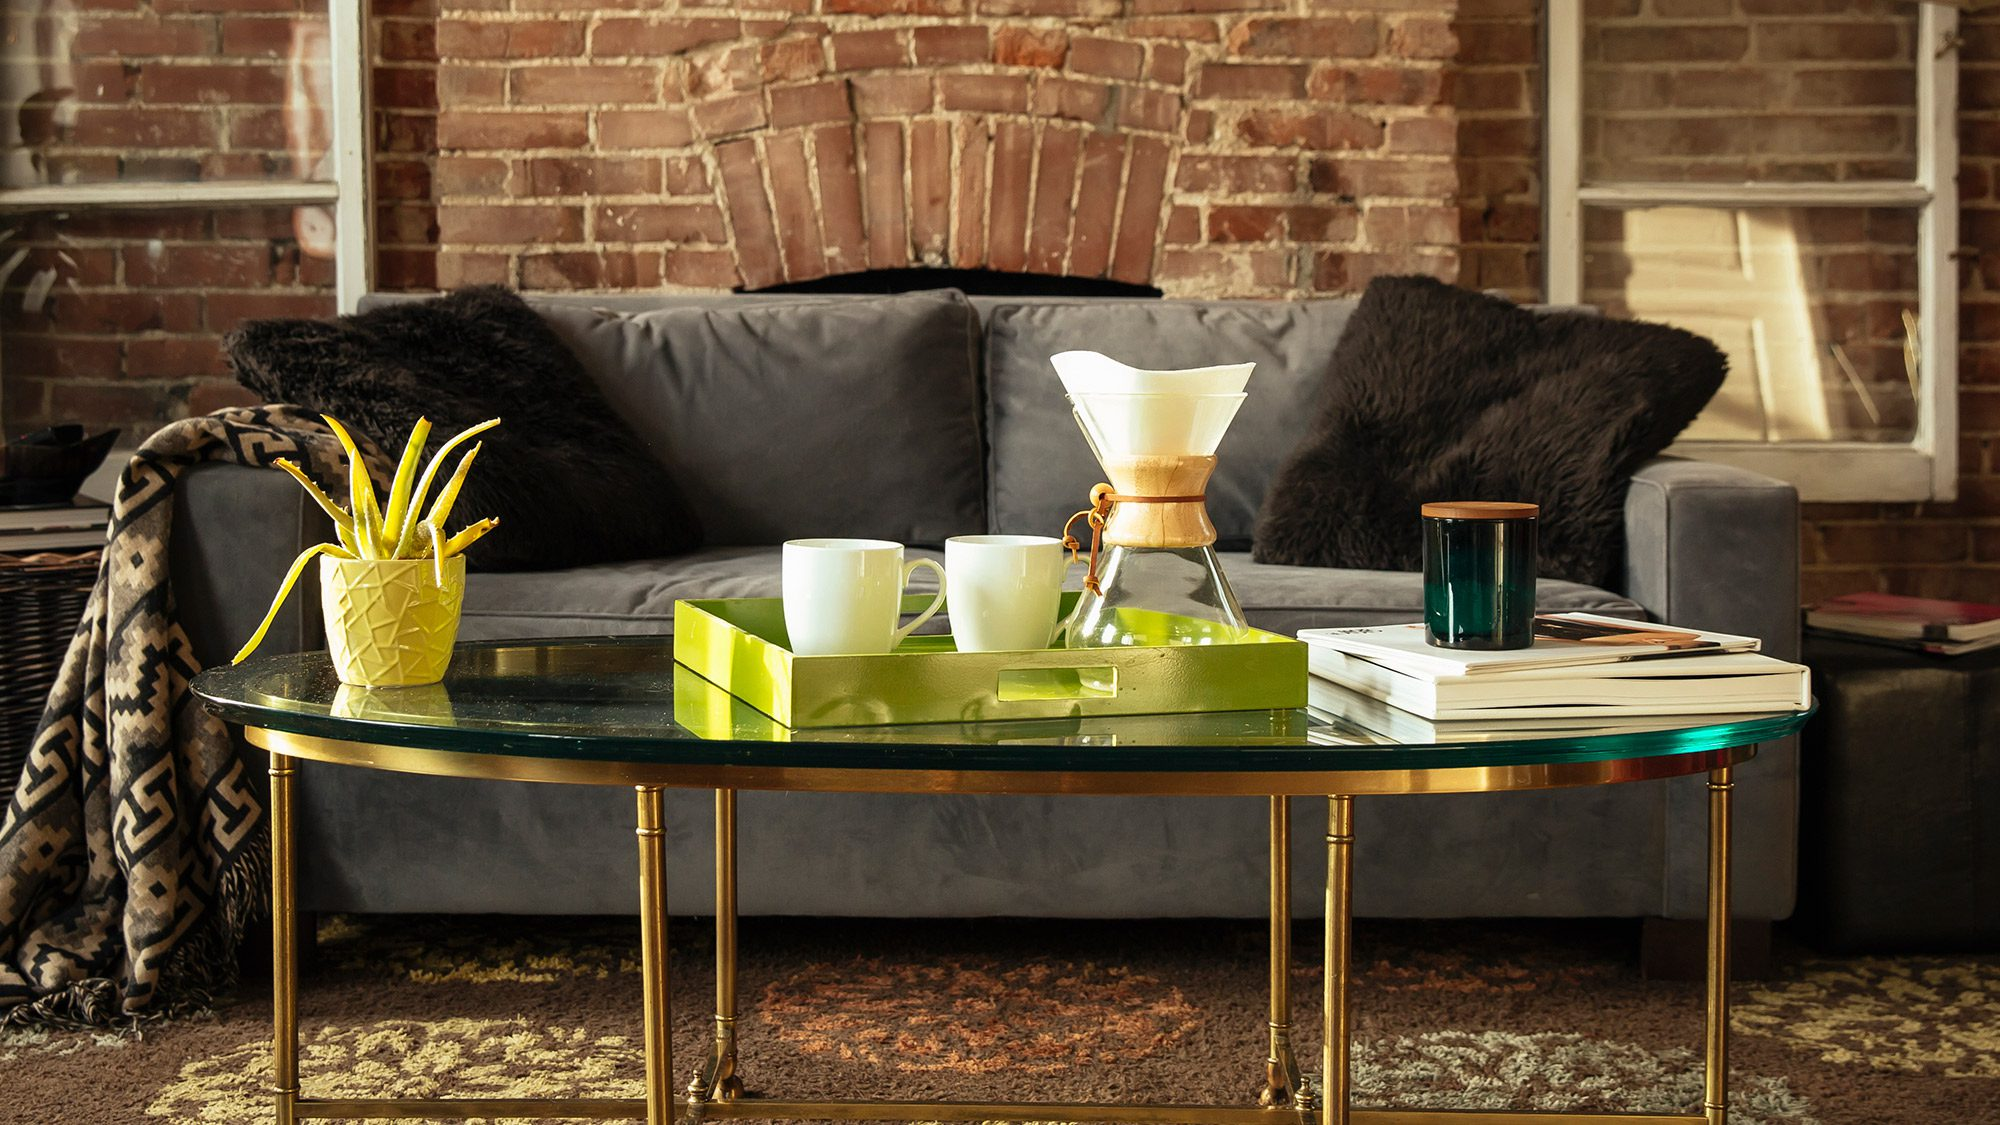 table tray decor ways to make the most of this home accessory realtor com